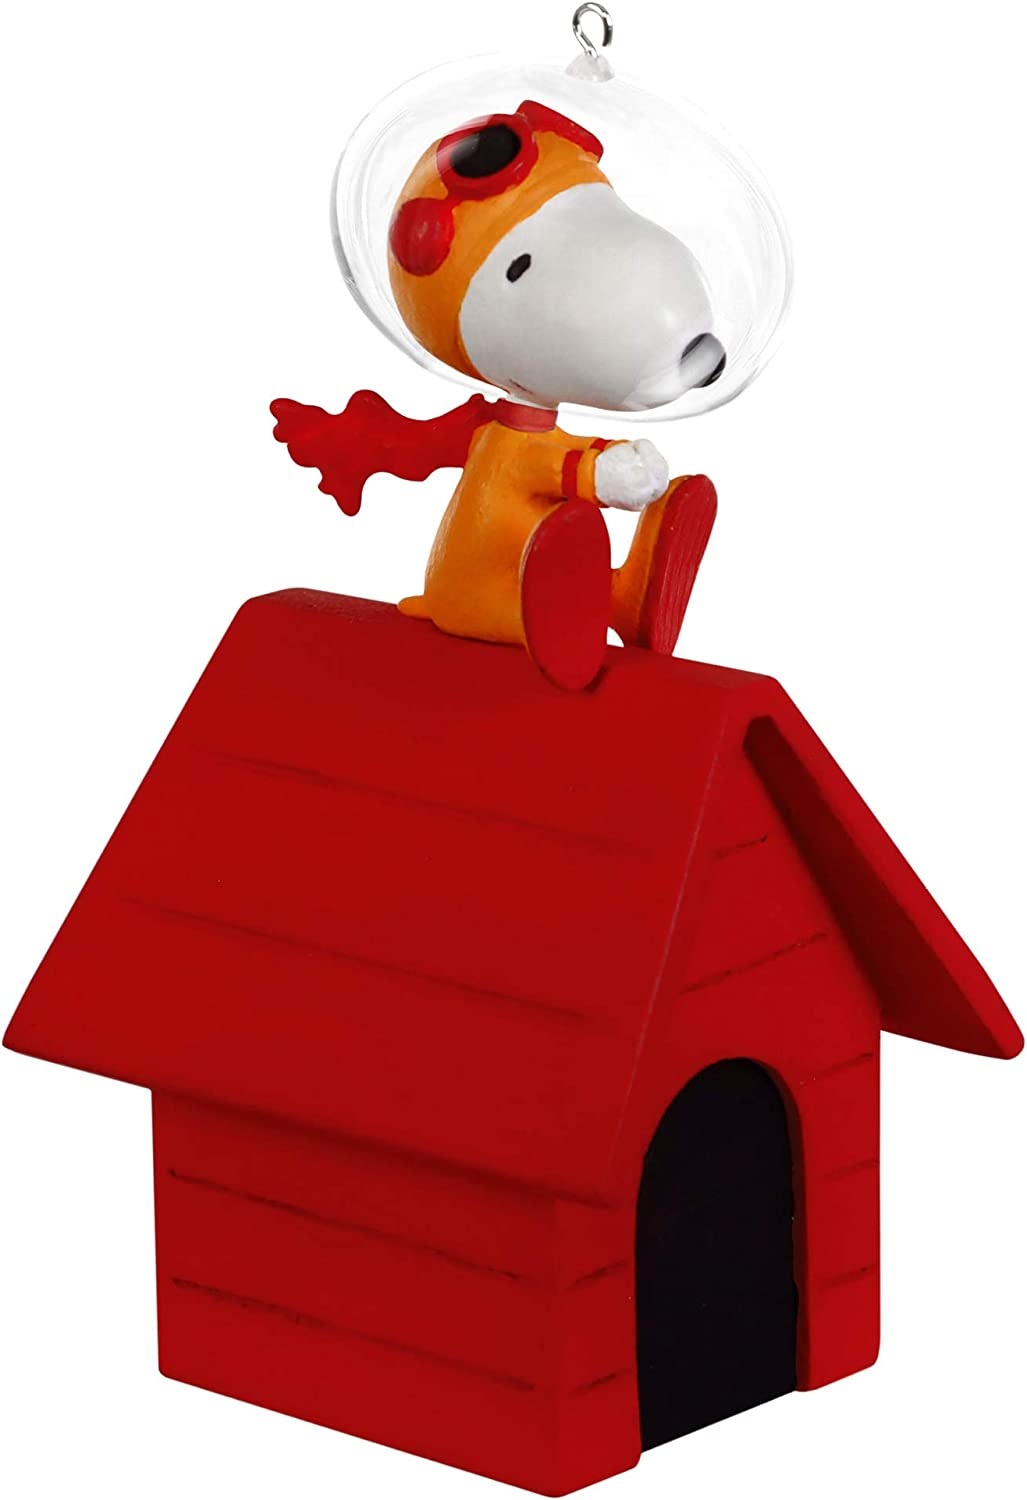 Hallmark Keepsake Christmas 2019 Year Dated The Peanuts Gang The Flying Ace Goes to Space Snoopy Astronaut Ornament